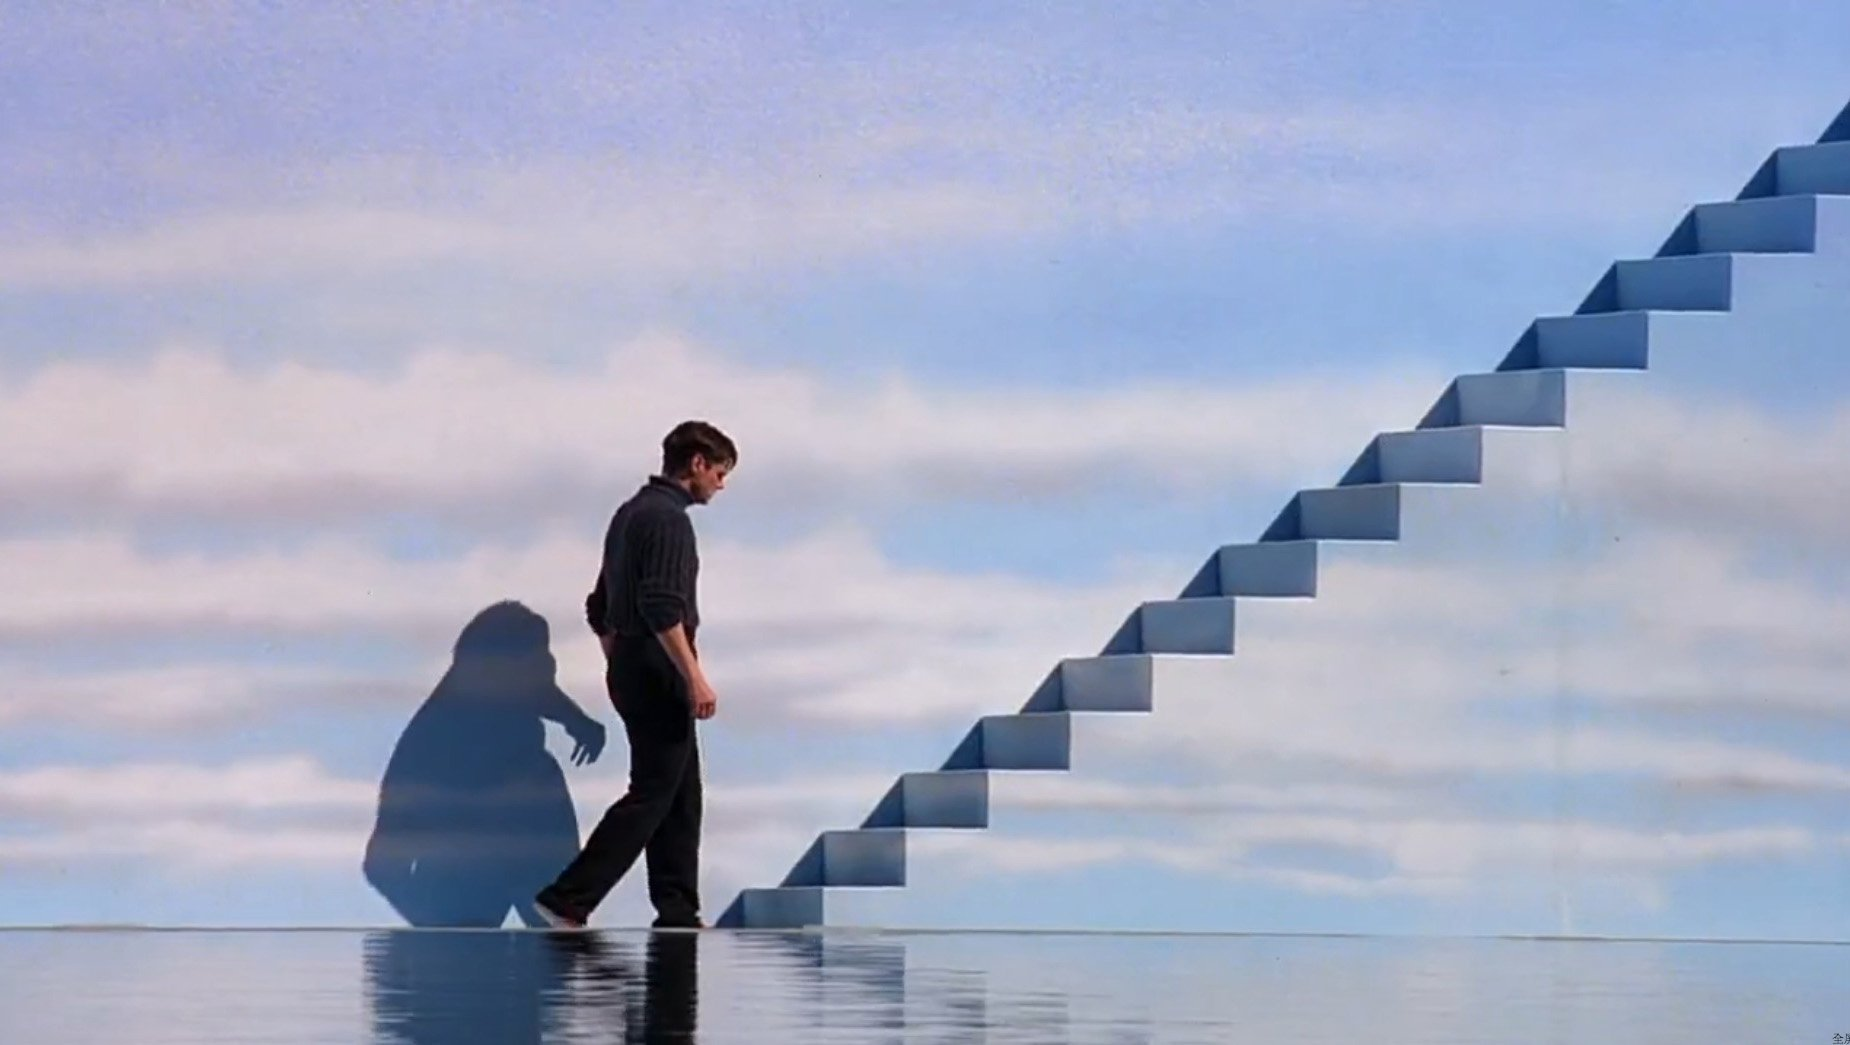 films architecture the truman show archdaily